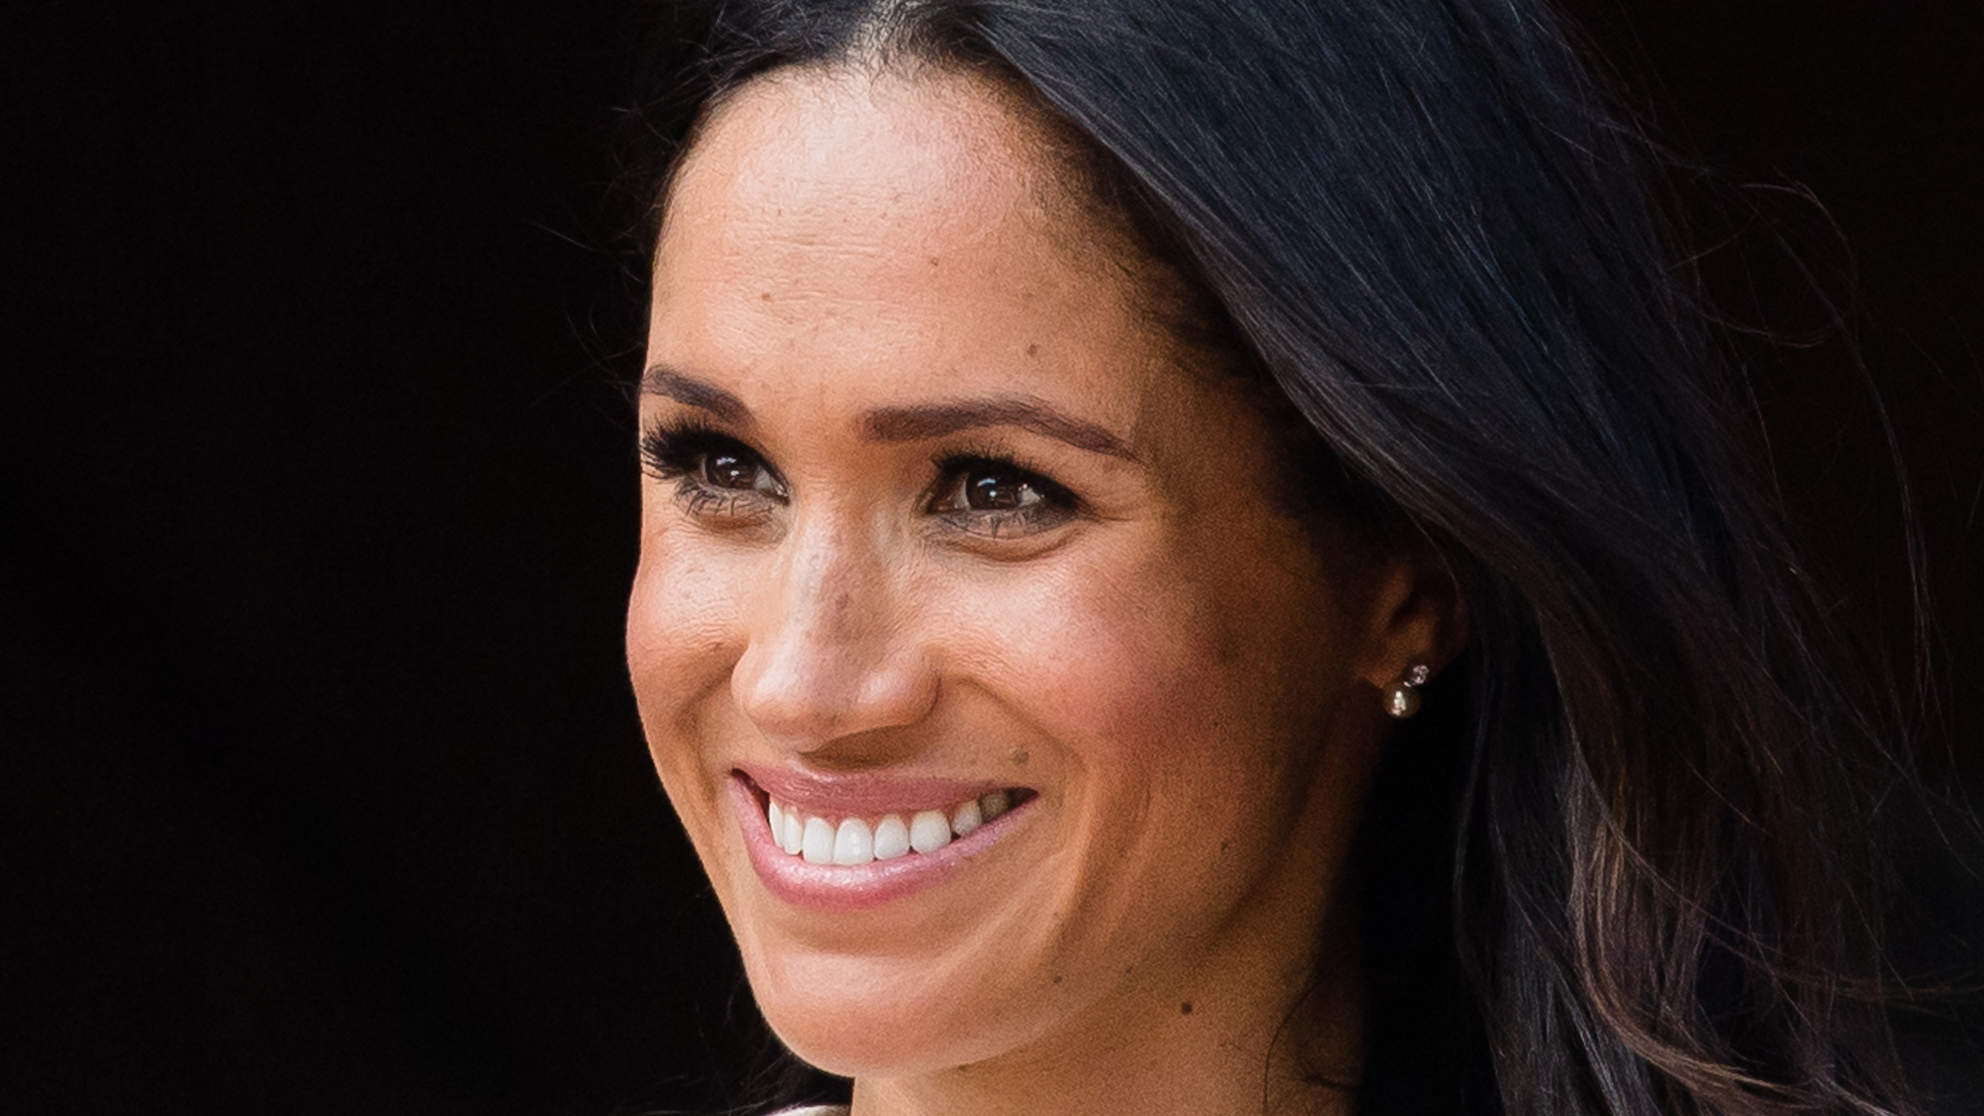 Meghan Markle Is Loving Her Rothy's Flats, Proving You Have Tons in Common